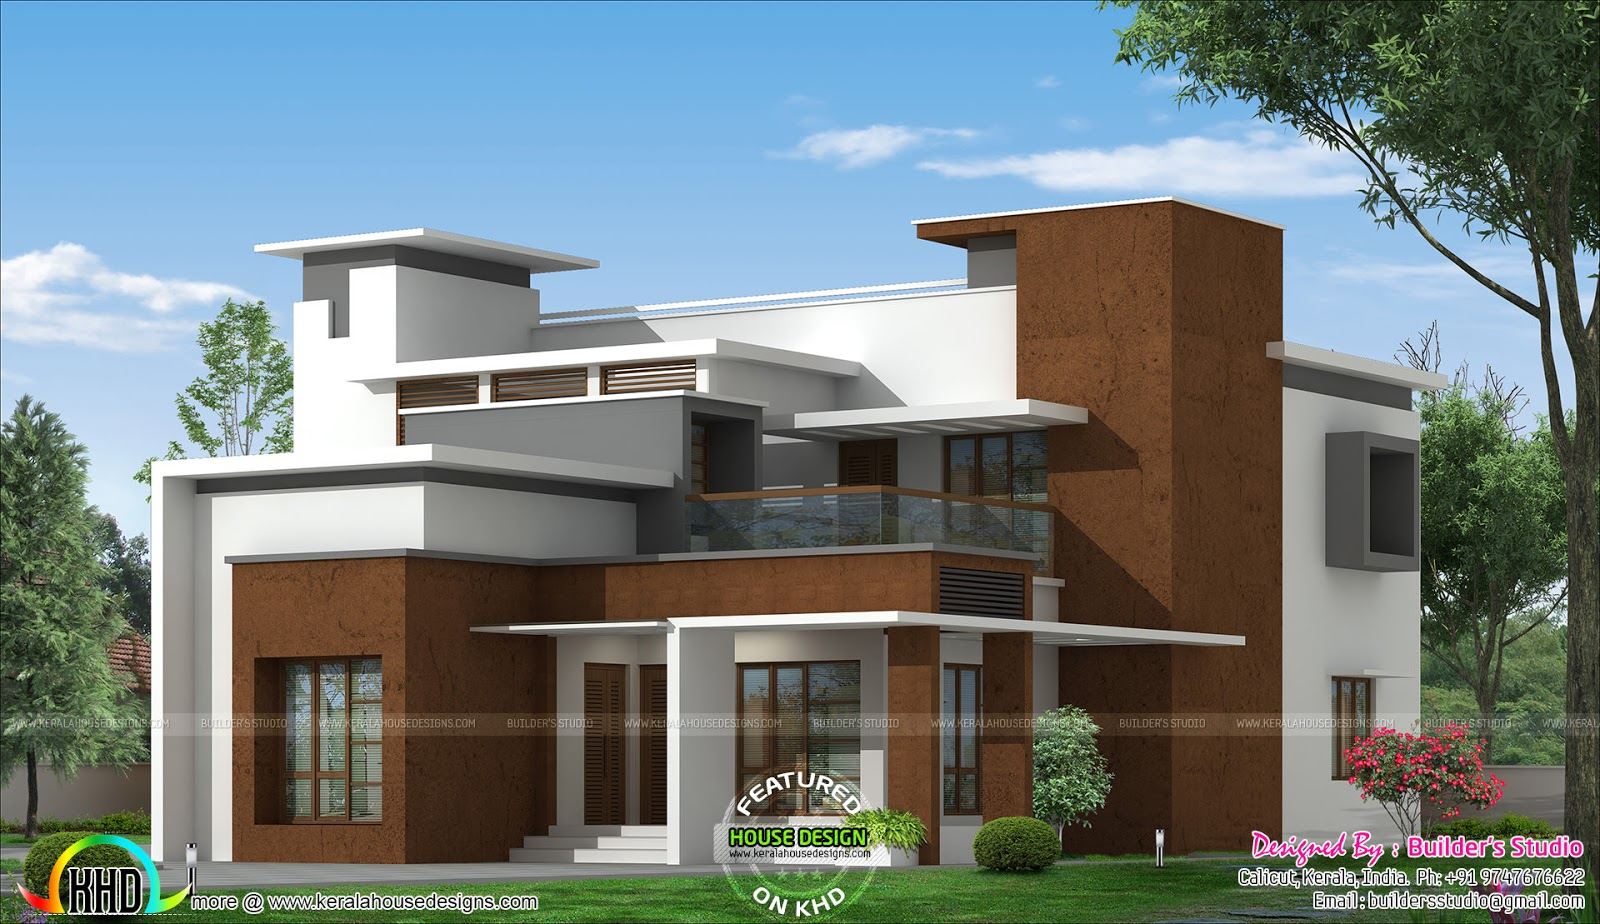 Box type modern home architecture plan kerala home for Best architecture home design in india